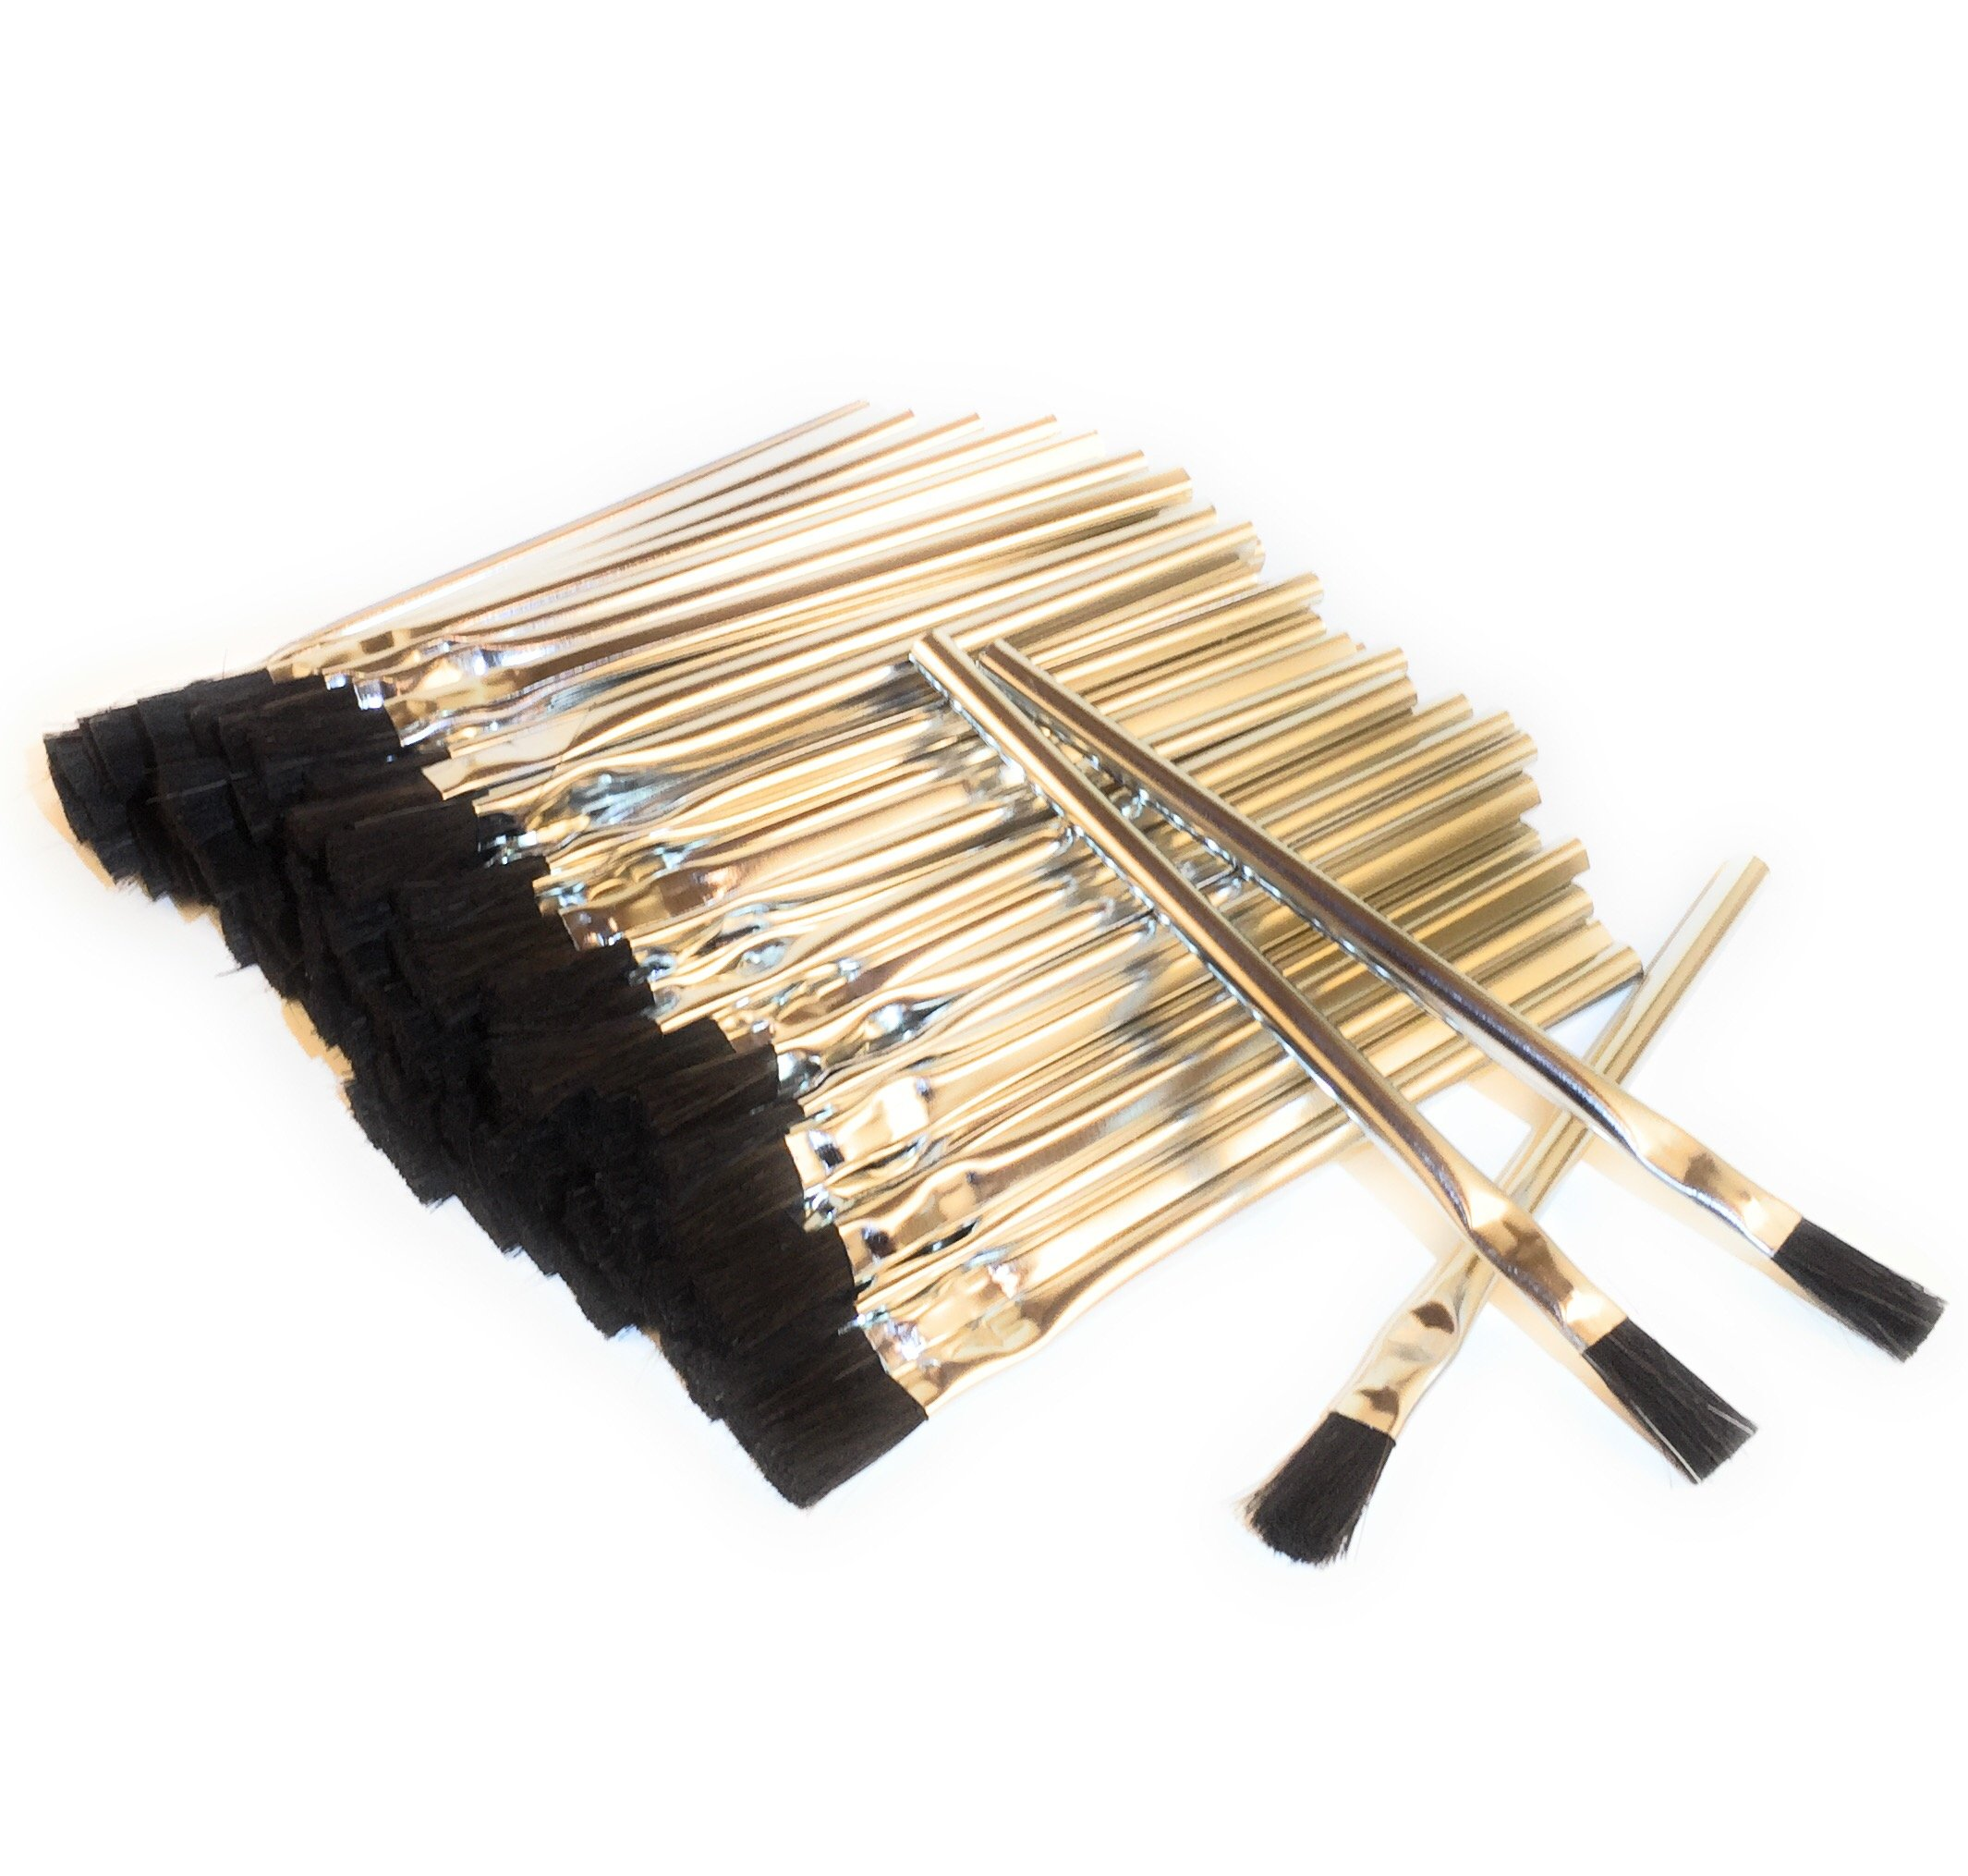 Acid Brushes (General-Purpose, Flux, Craft), 3/8'', Horsehair, 144 pieces, Made in USA by National Brush